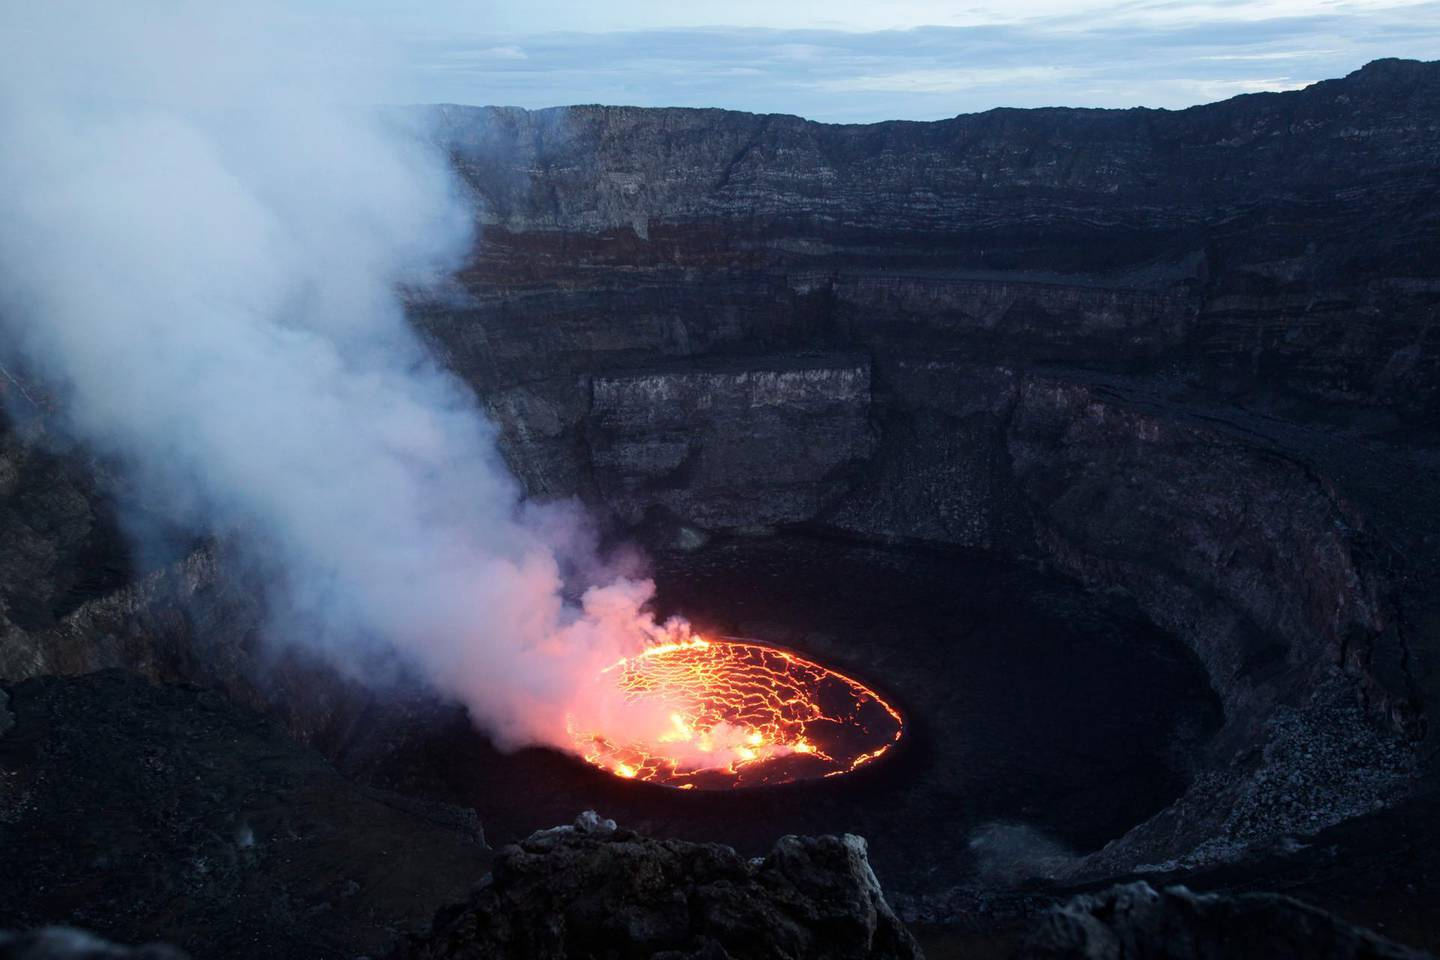 In this March 31, 2010 photo, smoke rises off of churning magma in the lava lake of Mount Nyiragongo, one of Africa's most active volcanos, outside Goma, Congo. Mount Nyiragongo is the ultimate symbol of death in Goma, the lakeside city it shadows and has overrun several times. Yet it's also a symbol of rebirth and resilience for a nation slowly emerging from war. In March, park rangers cleared Rwandan militias from its slopes and reopened the summit for the first time in a year and a half. (AP Photo/Rebecca Blackwell)